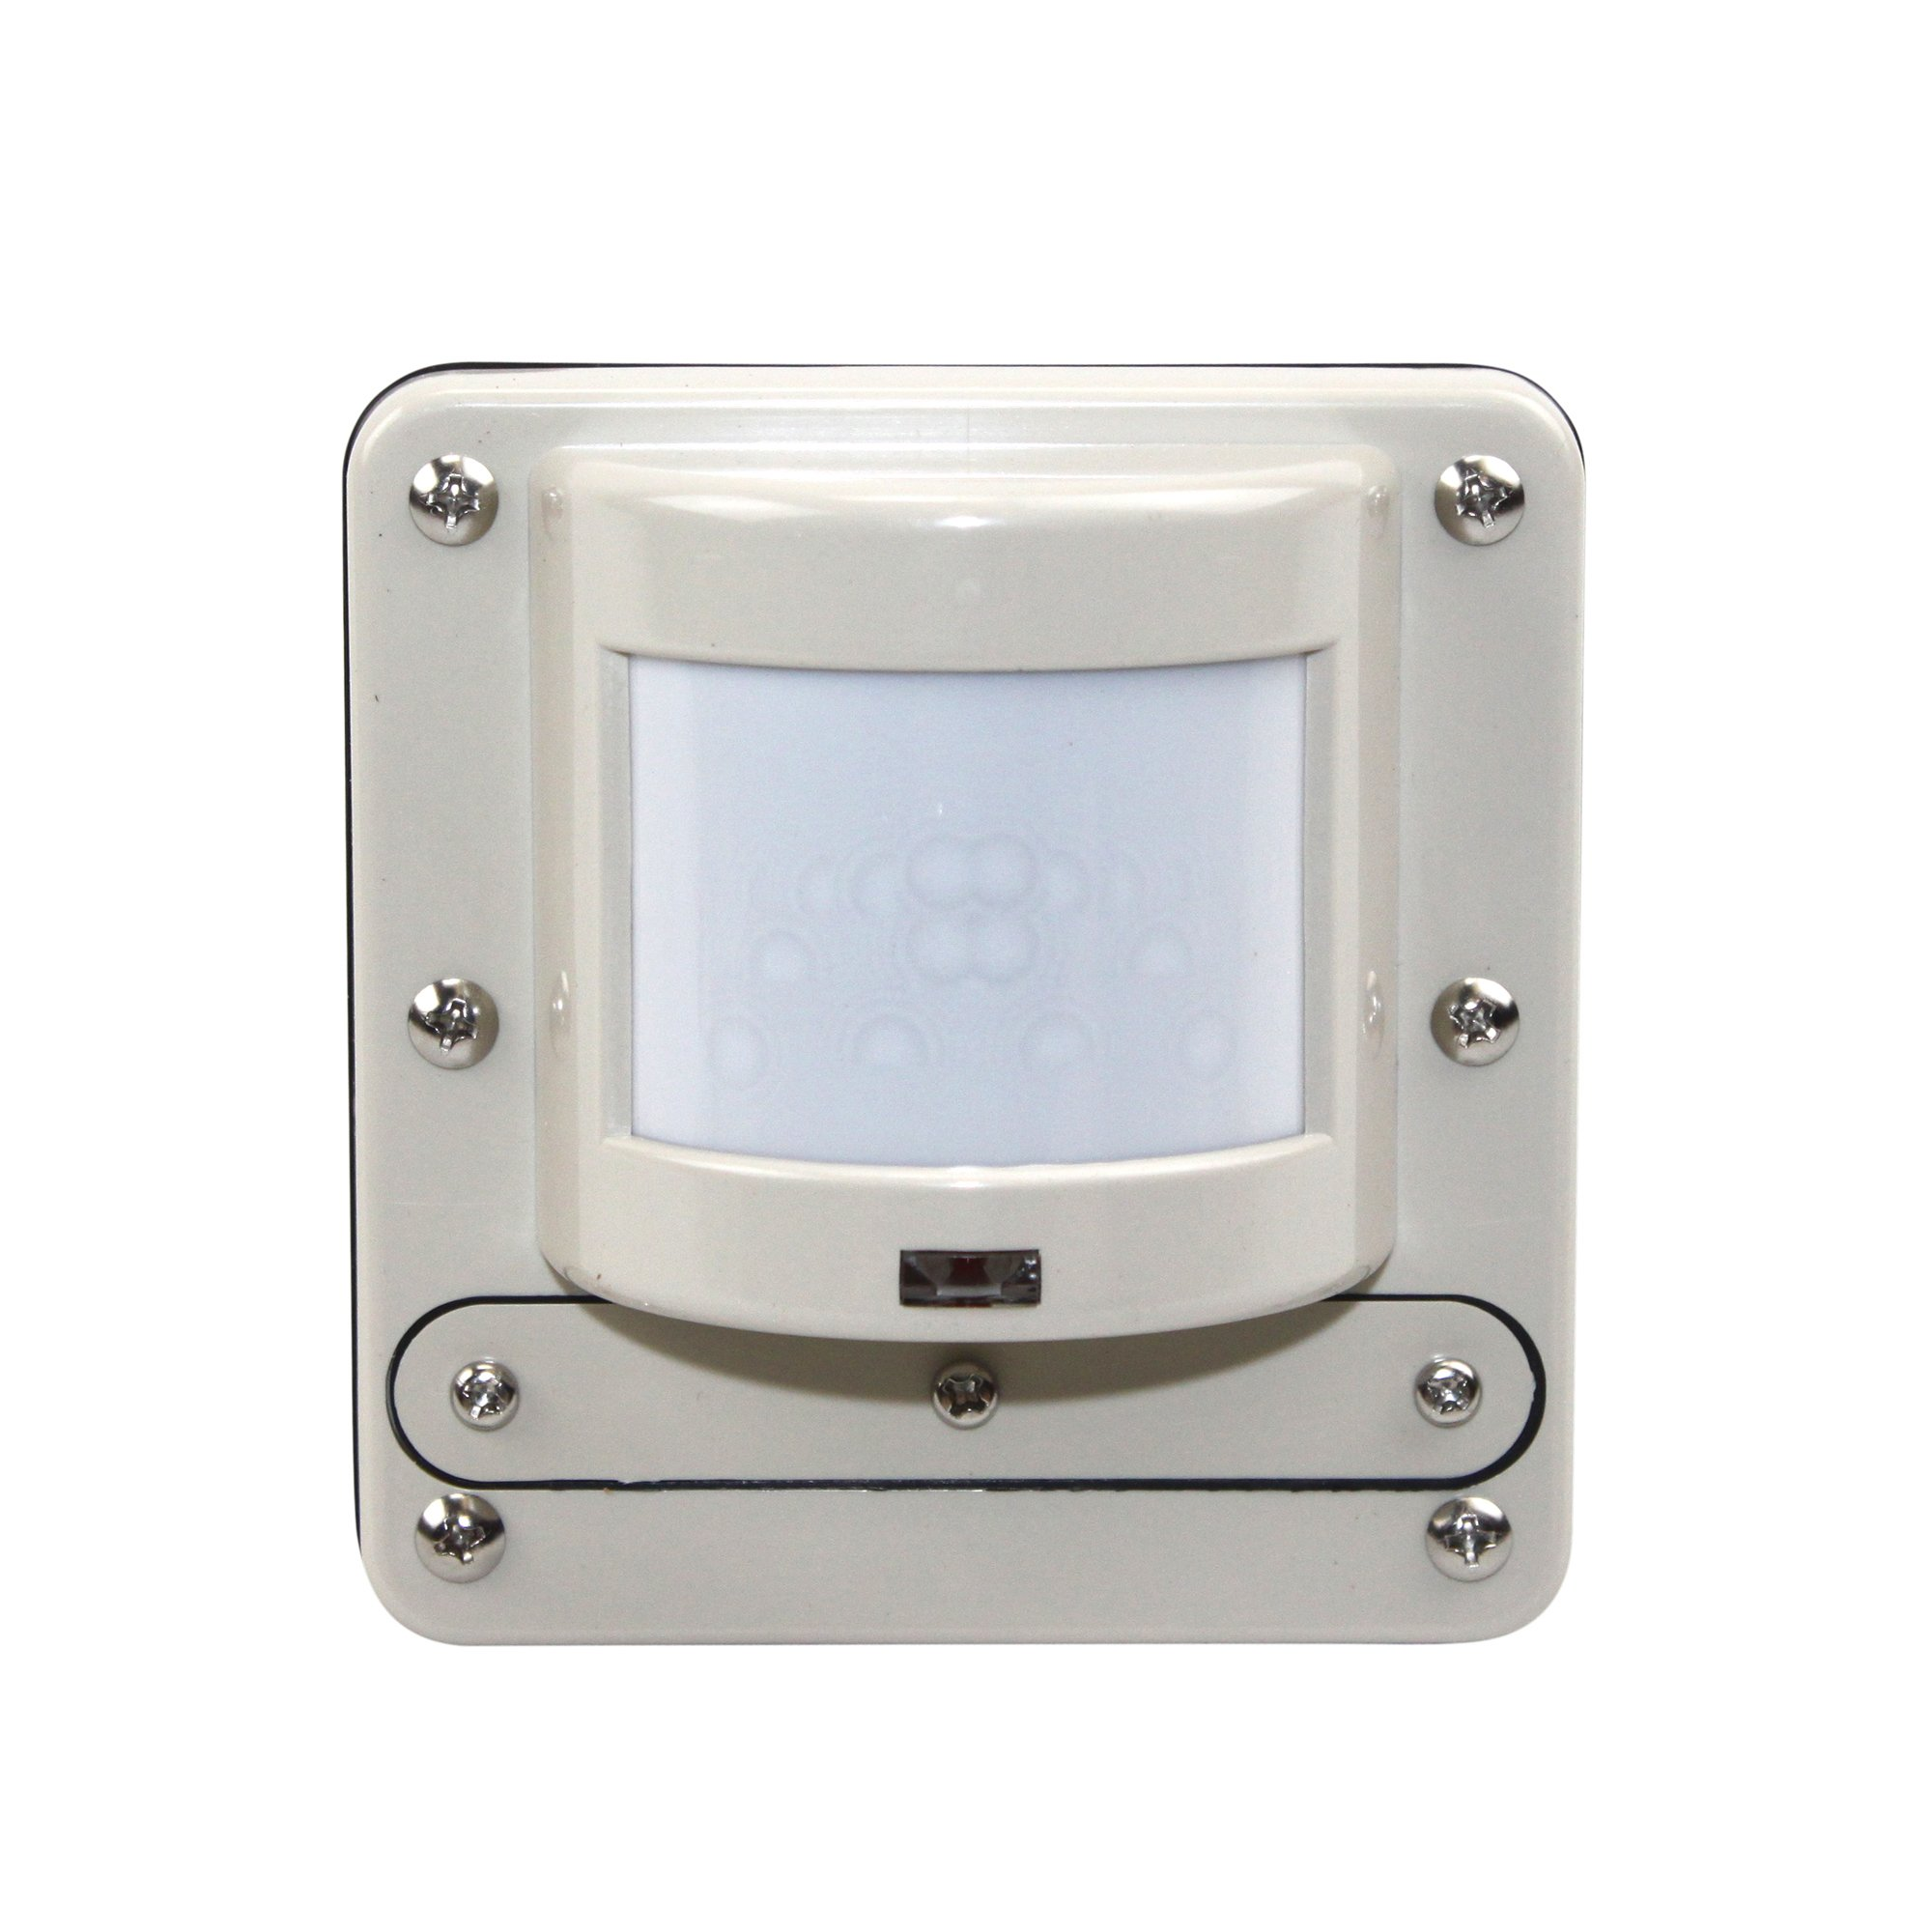 Wattstopper CB-100 24VDC PIR Ceiling Occupancy Sensor by Watt Stopper